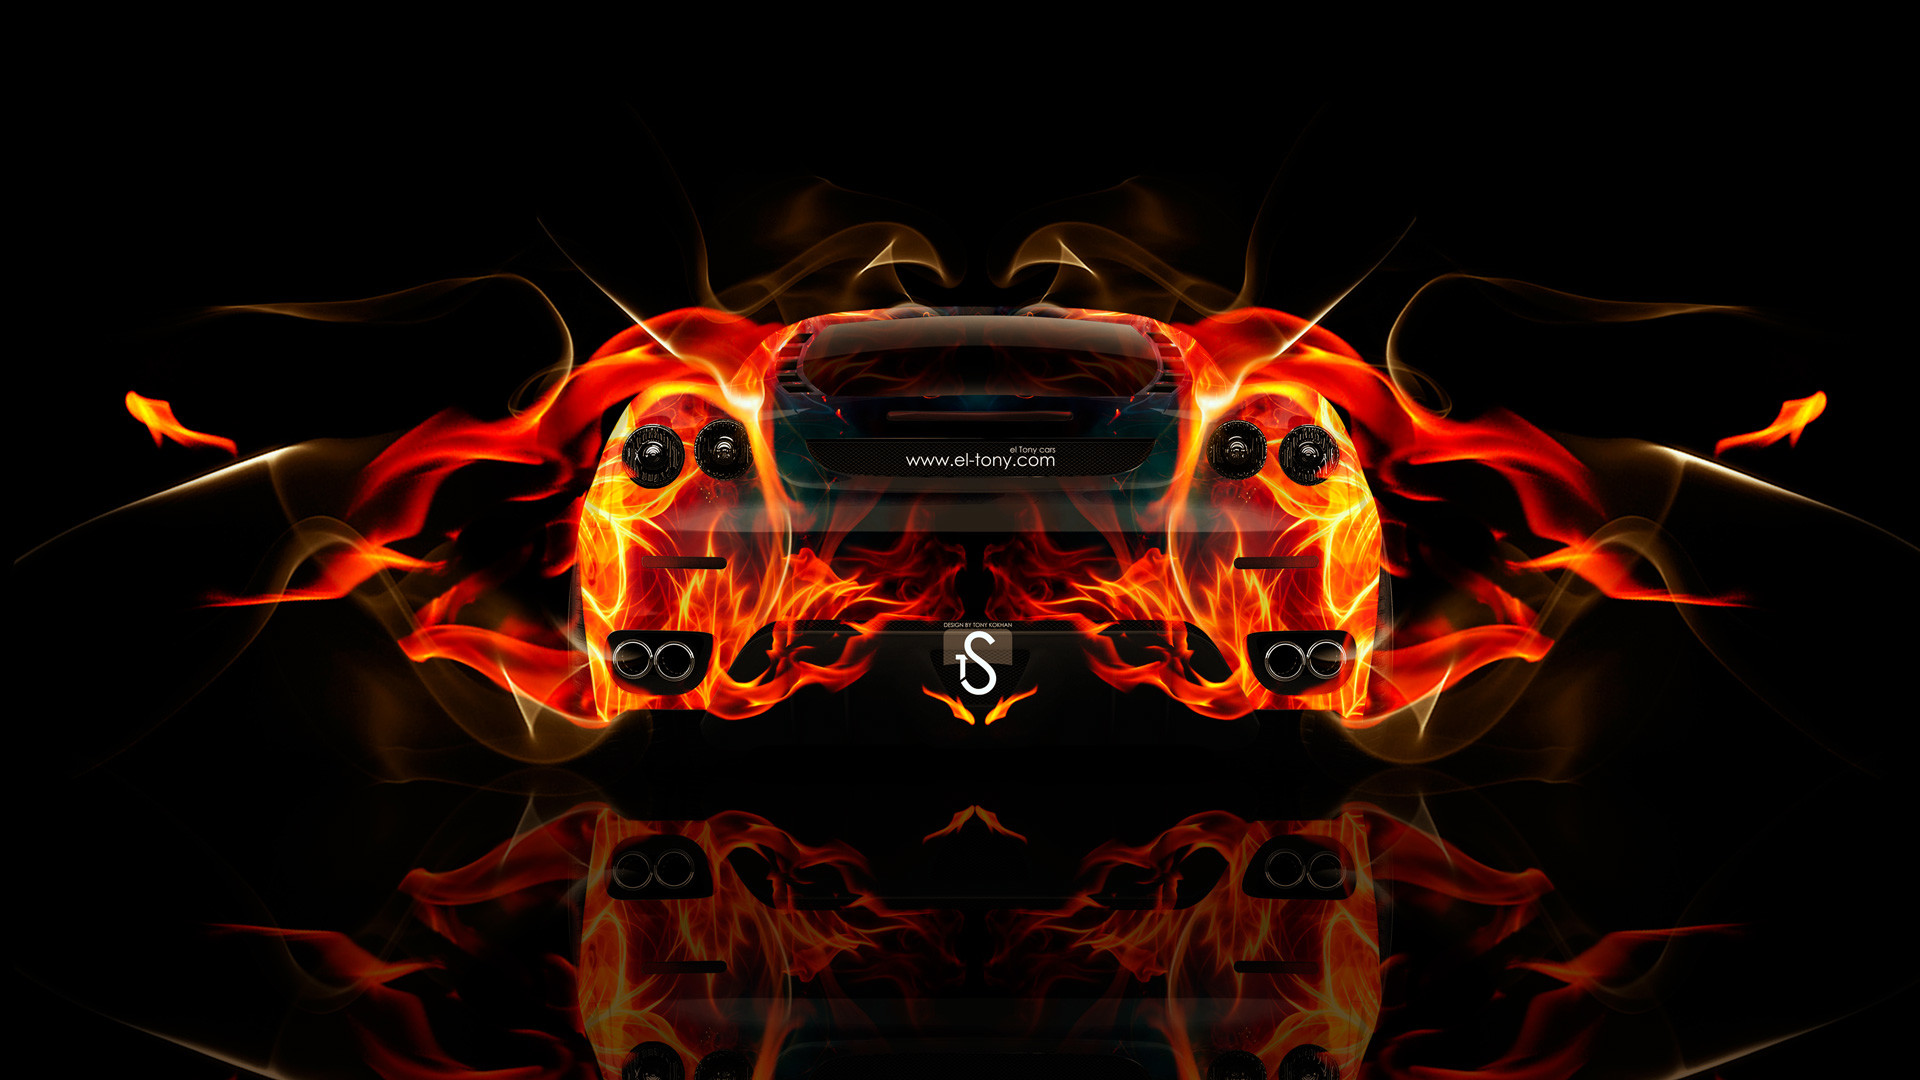 Res: 1920x1080, F430 Front Fire Abstract Car 2014 Ferrari Italia Fire Abstract Car